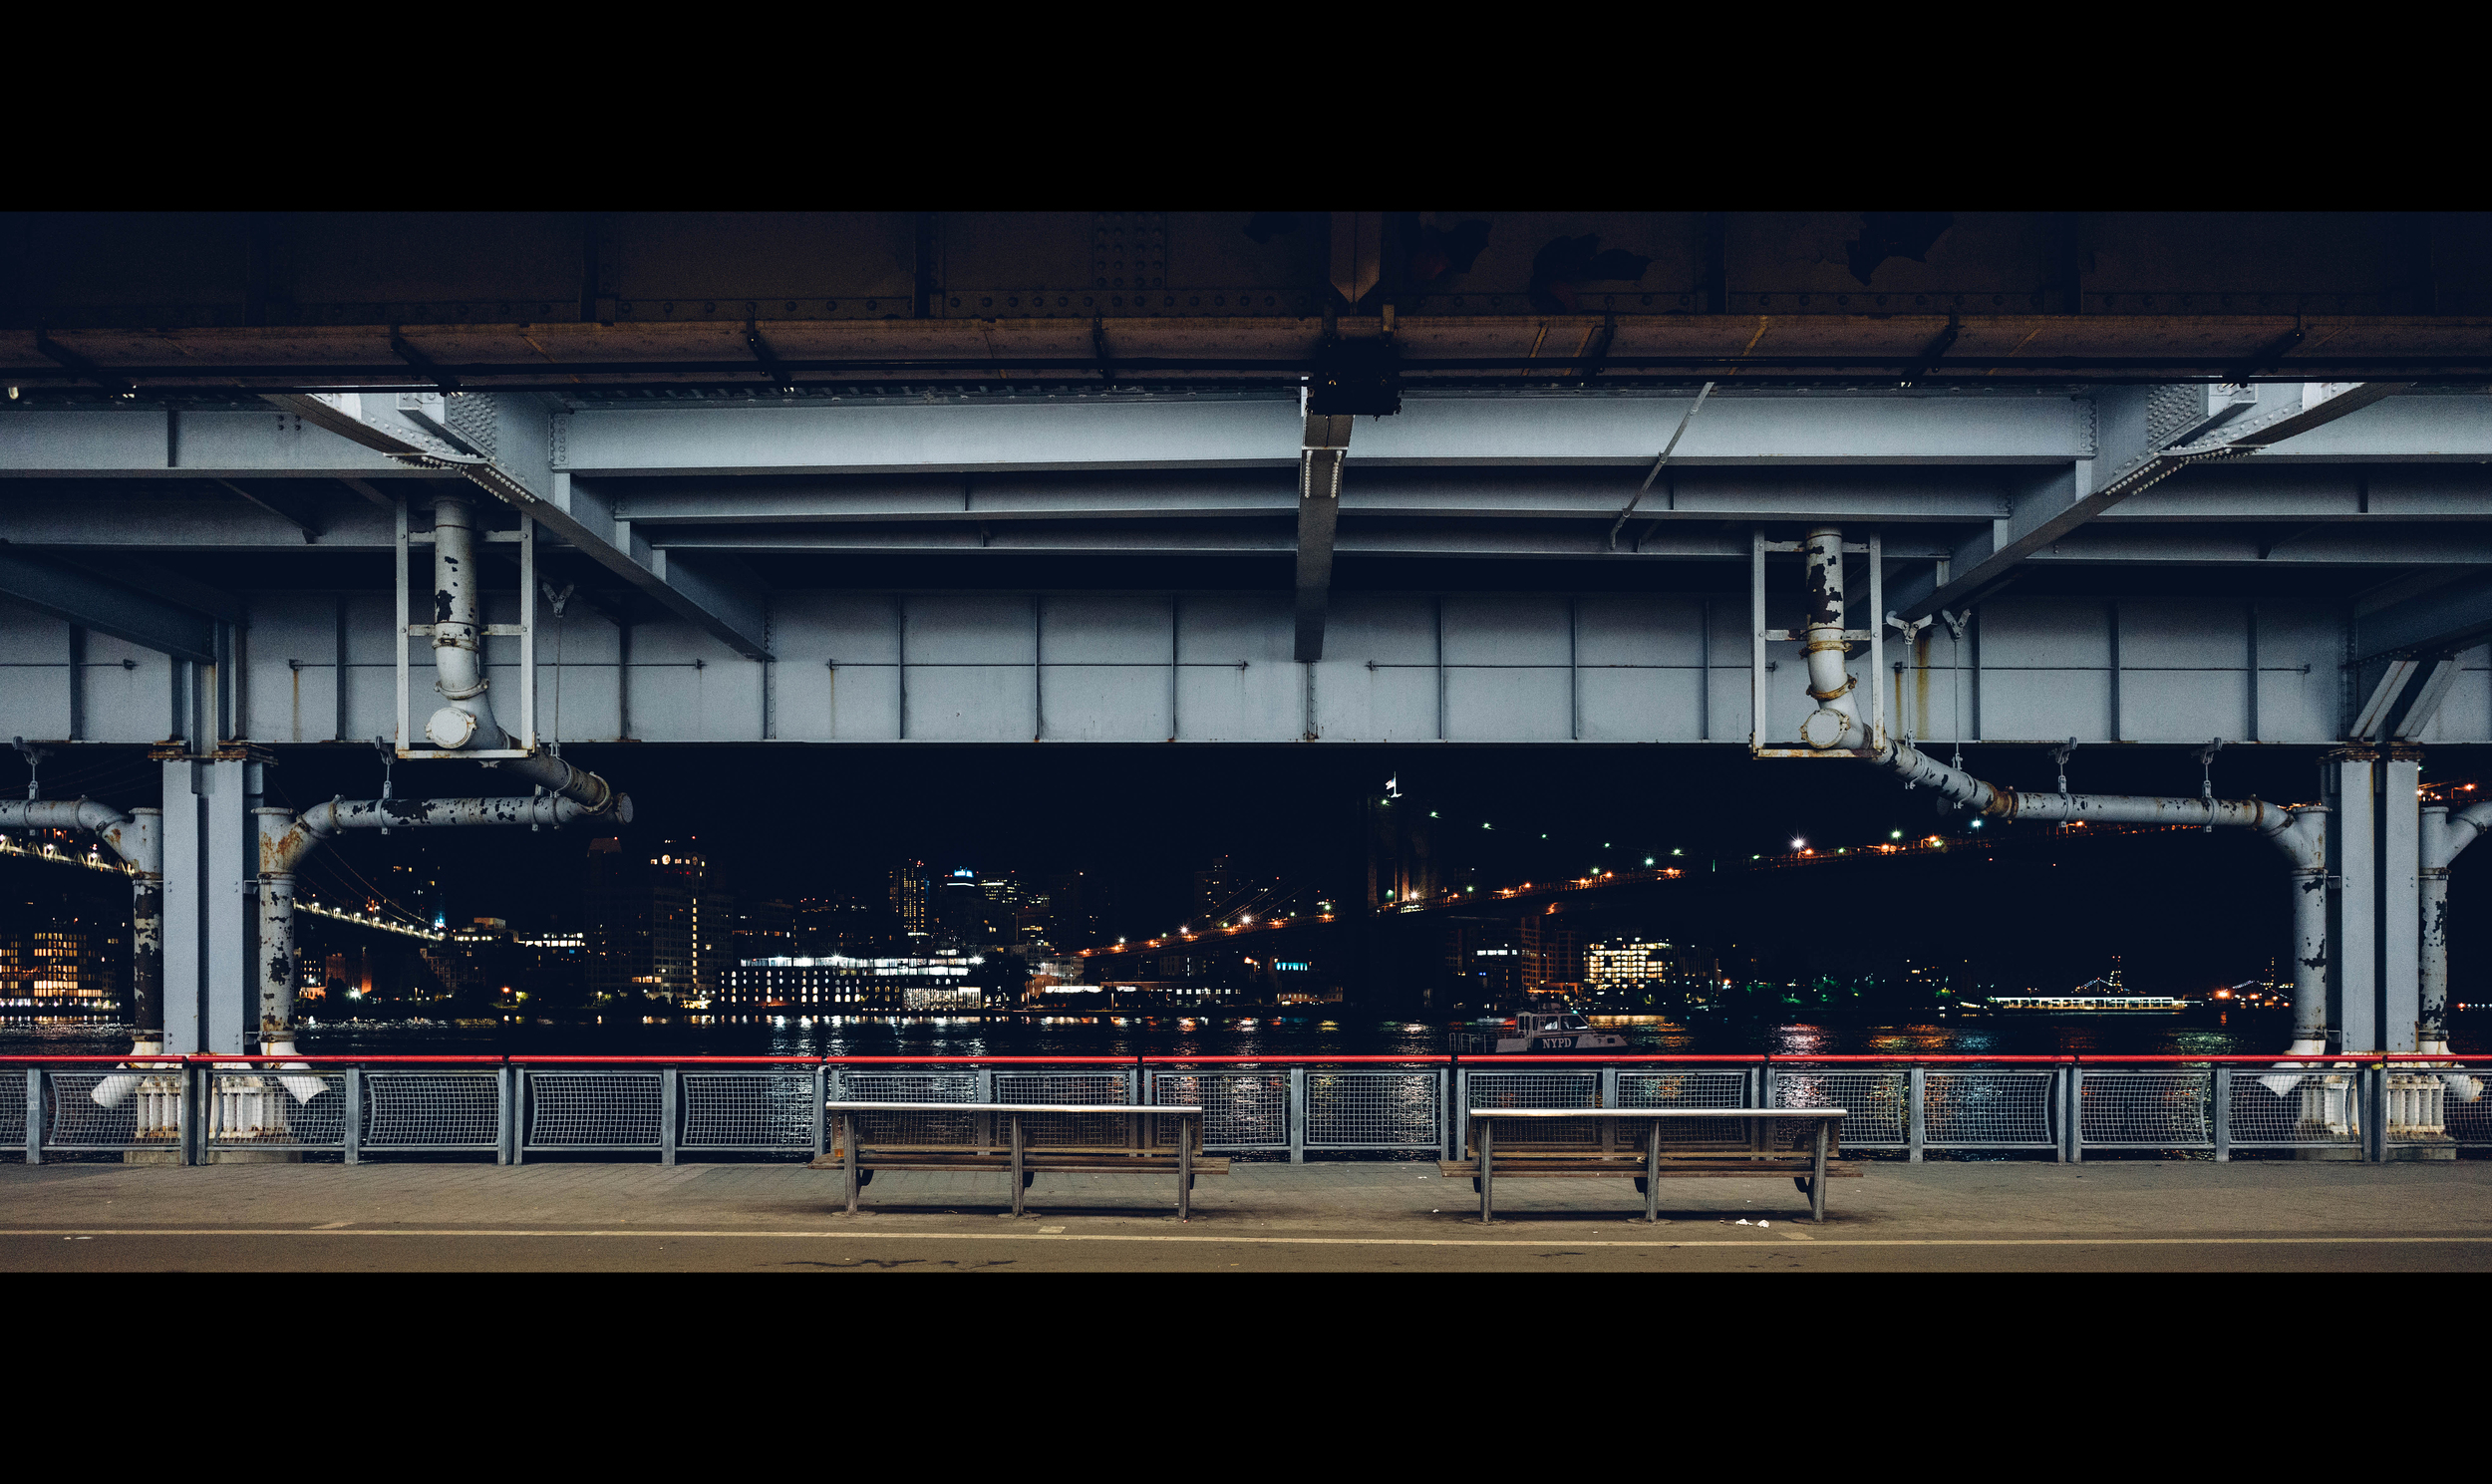 (Sony ILCE-7RM2 + Zeiss Loxia 21mm f/2.8) ISO 3200 - South Street Seaport,I love the minimality and the fact that there is no human element in this one.